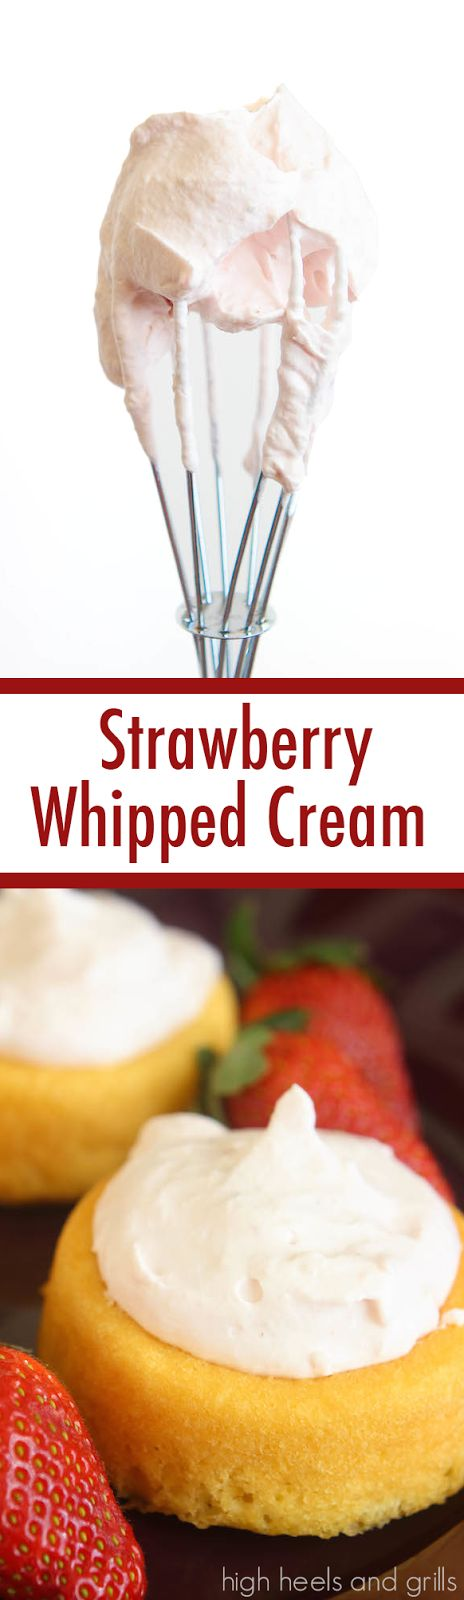 Strawberry Whipped Cream. dessert valentinesday http://www.highheelsandgrills.com/2015/01/strawberry-whipped-cream.html